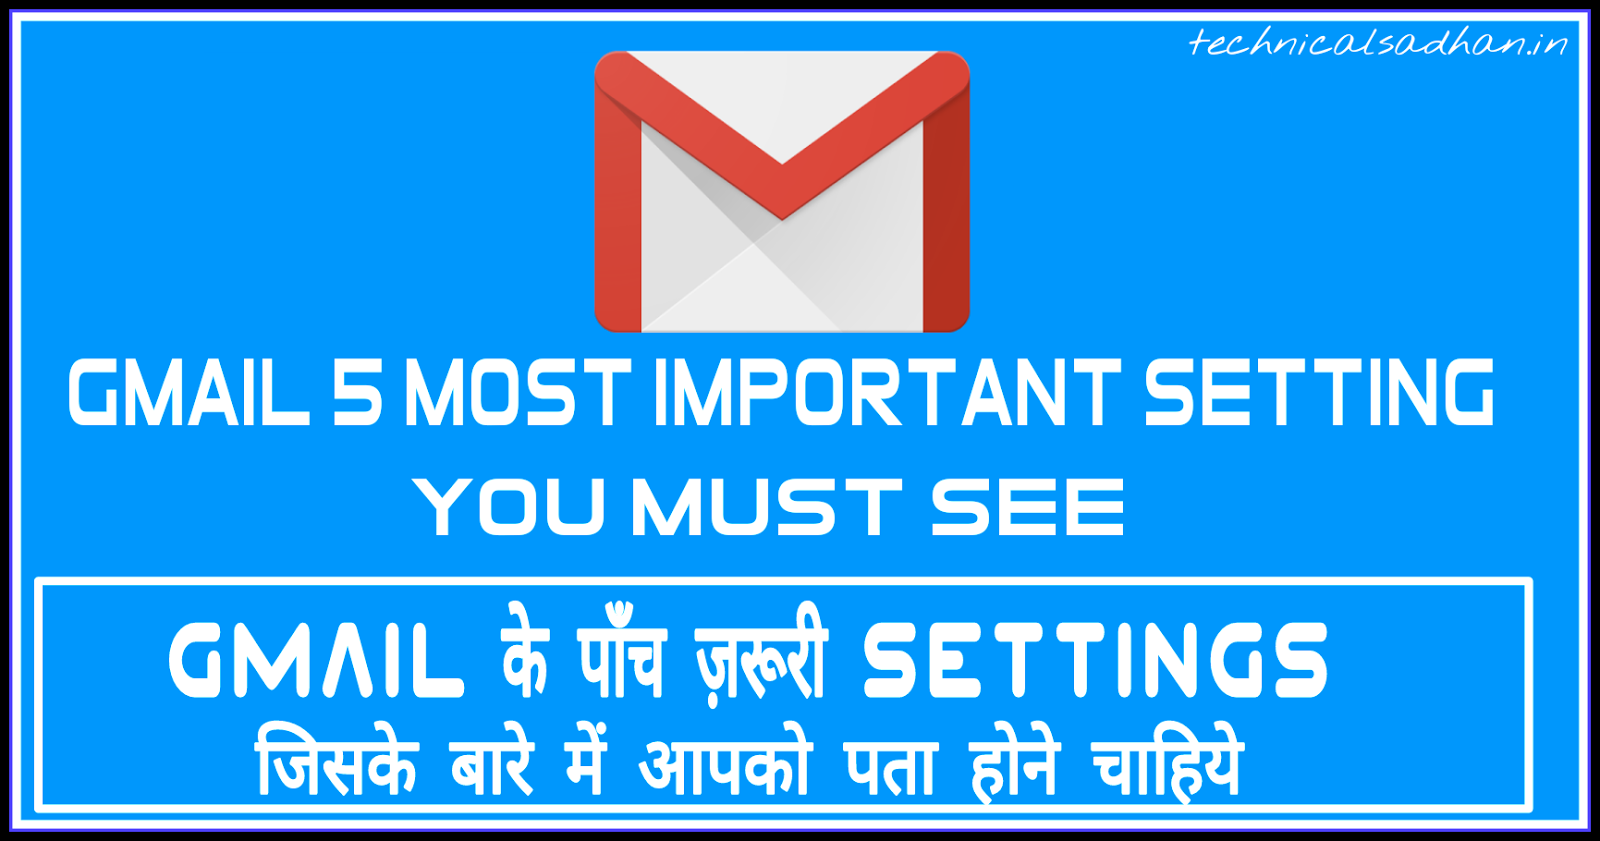 Gmail 5 Most Important Setting You Must See- Gmail के 5 जरूरी सेटिंग